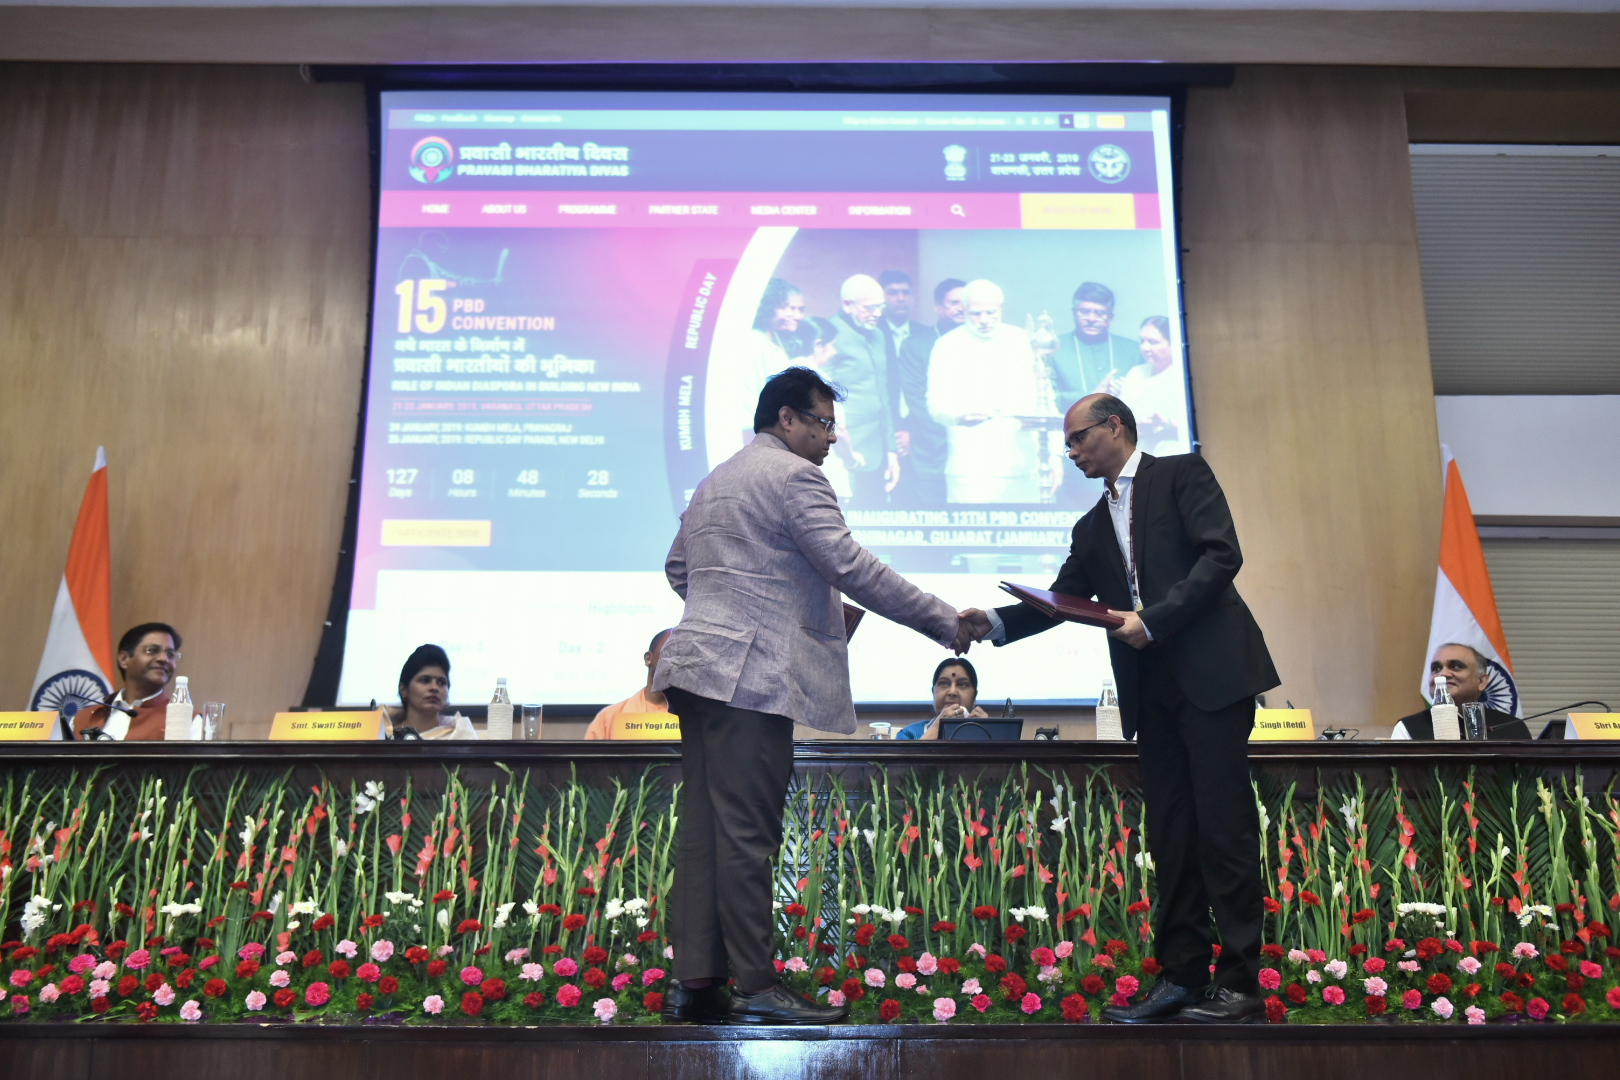 External Affairs Minister and Yogi Adityanath, Chief Minister of Uttar Pradesh jointly launch the website of 15th Pravasi Bharatiya Divas in New Delhi